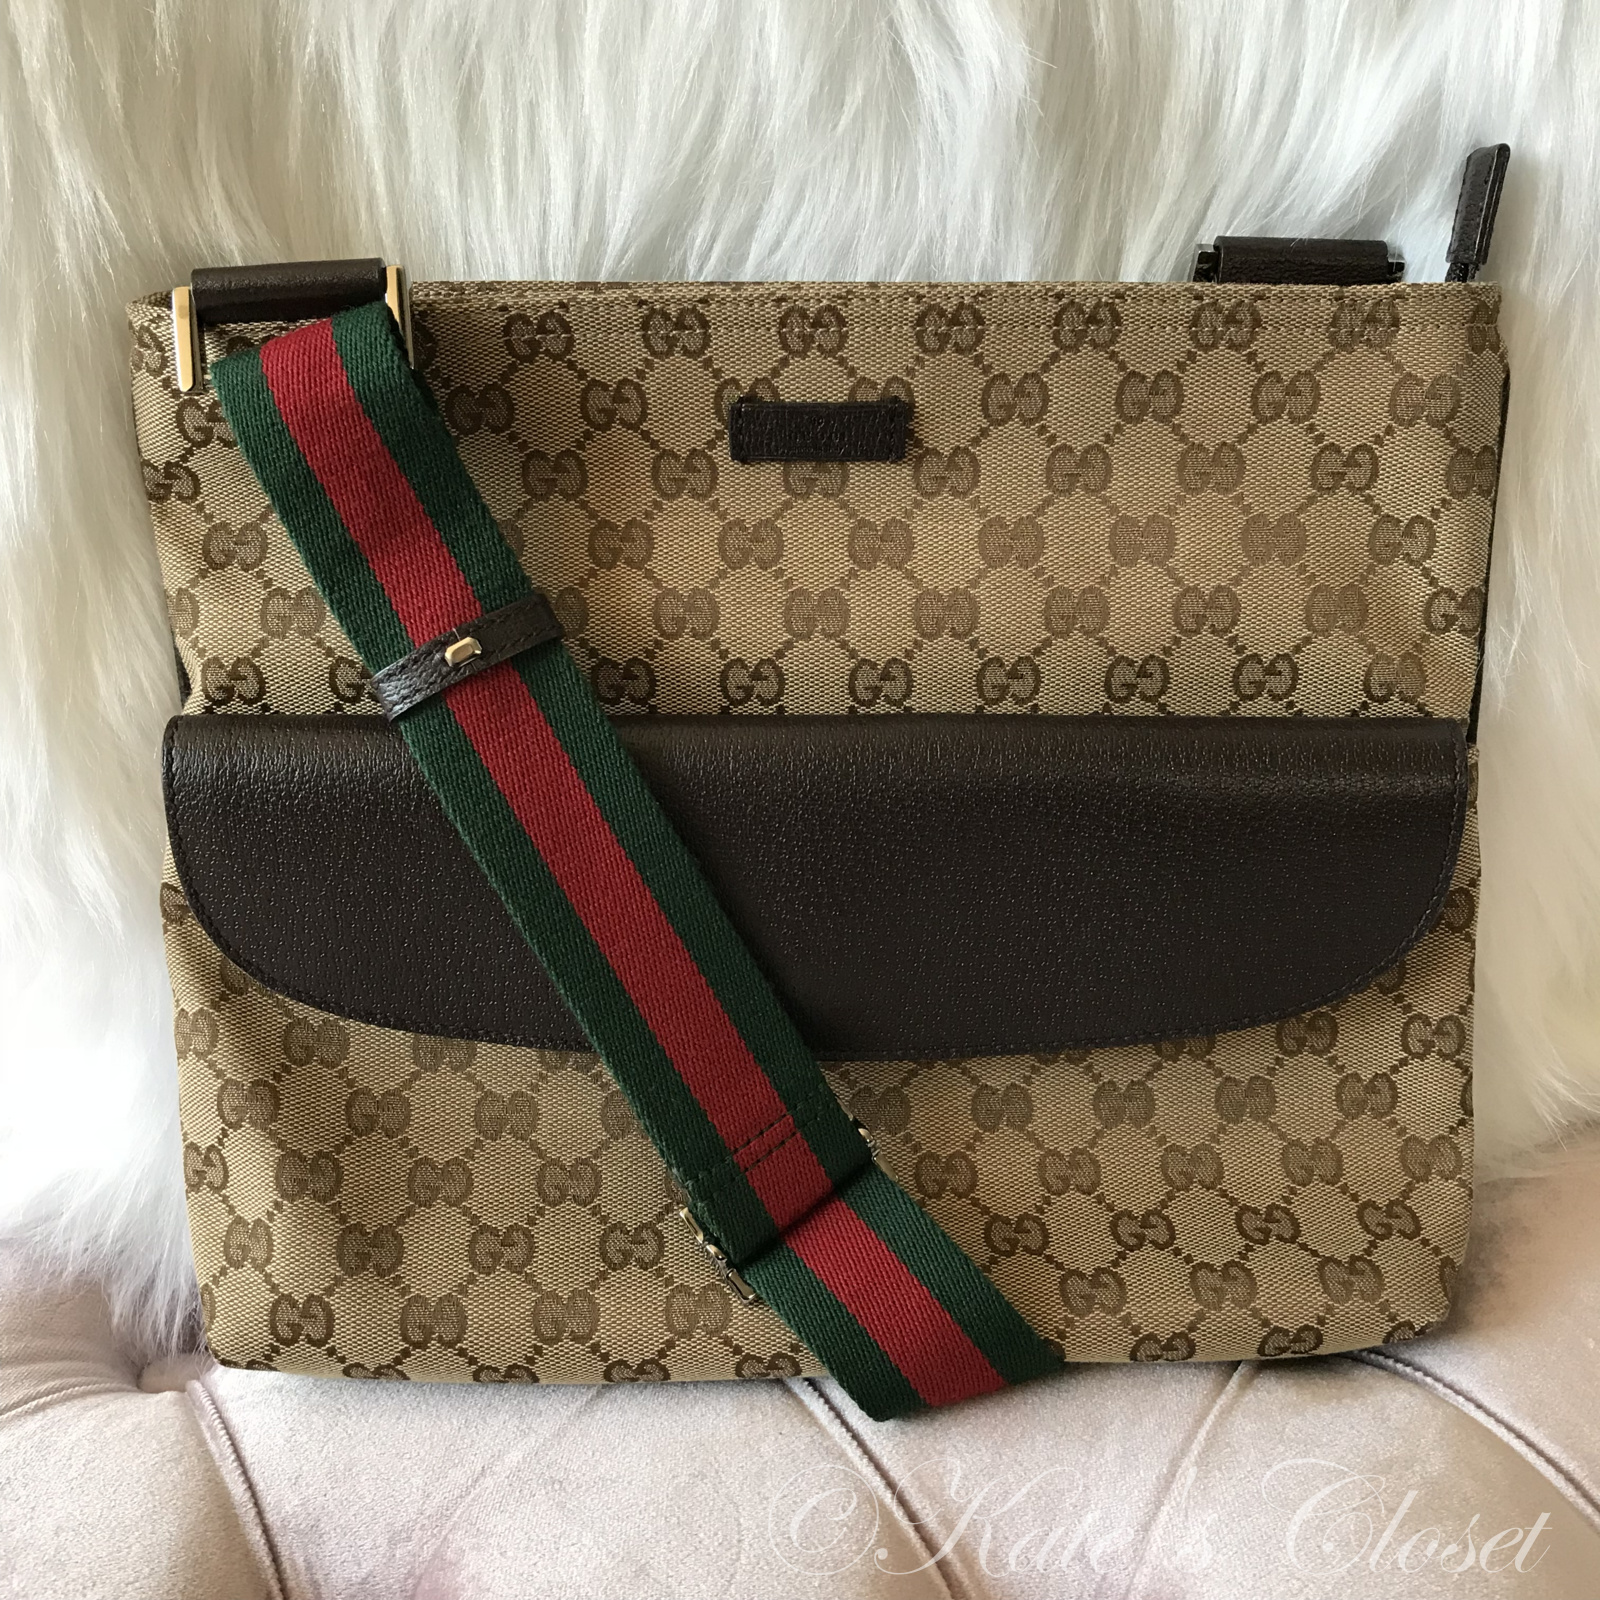 GUCCI GG CANVAS Beige and Brown Cross Body Bag with Webbing Strap